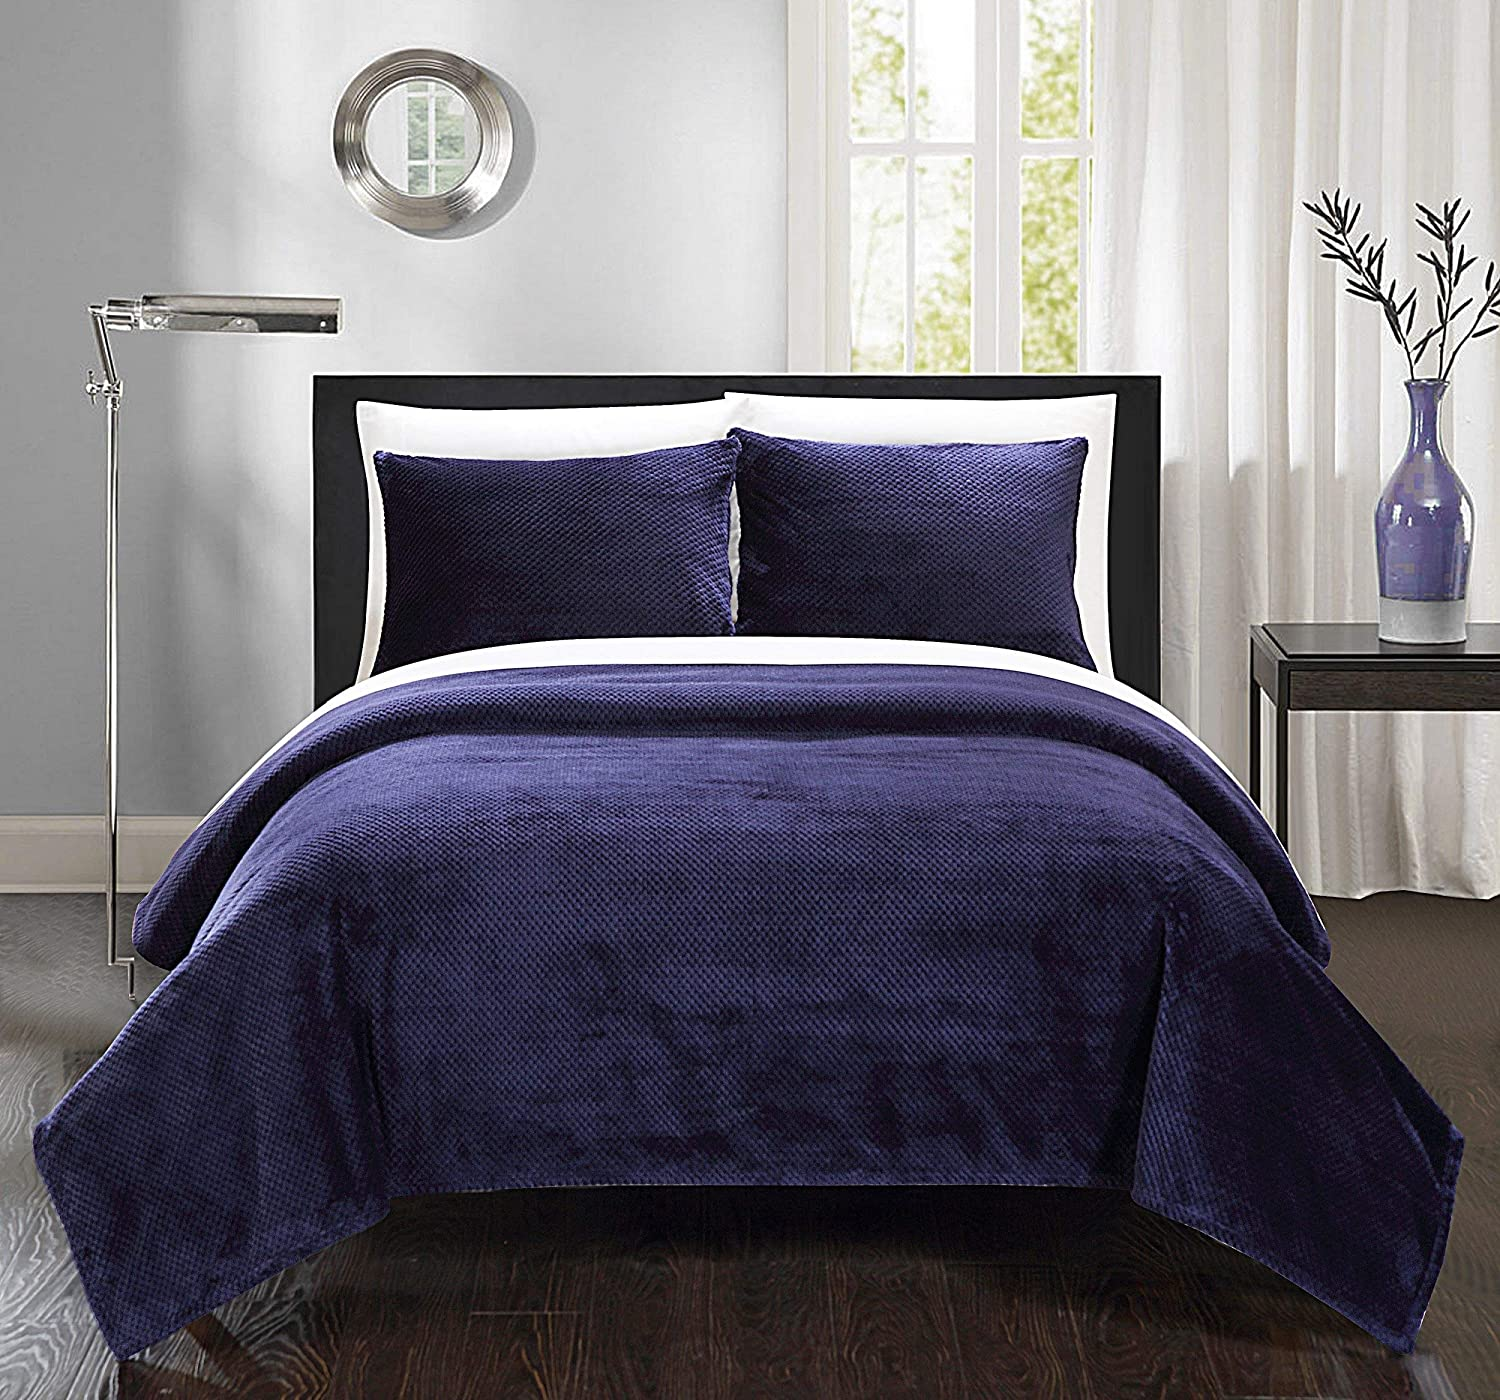 Chic Home SB1676-AN 3 Piece Luxembourg Blanket and Shams Set King Navy